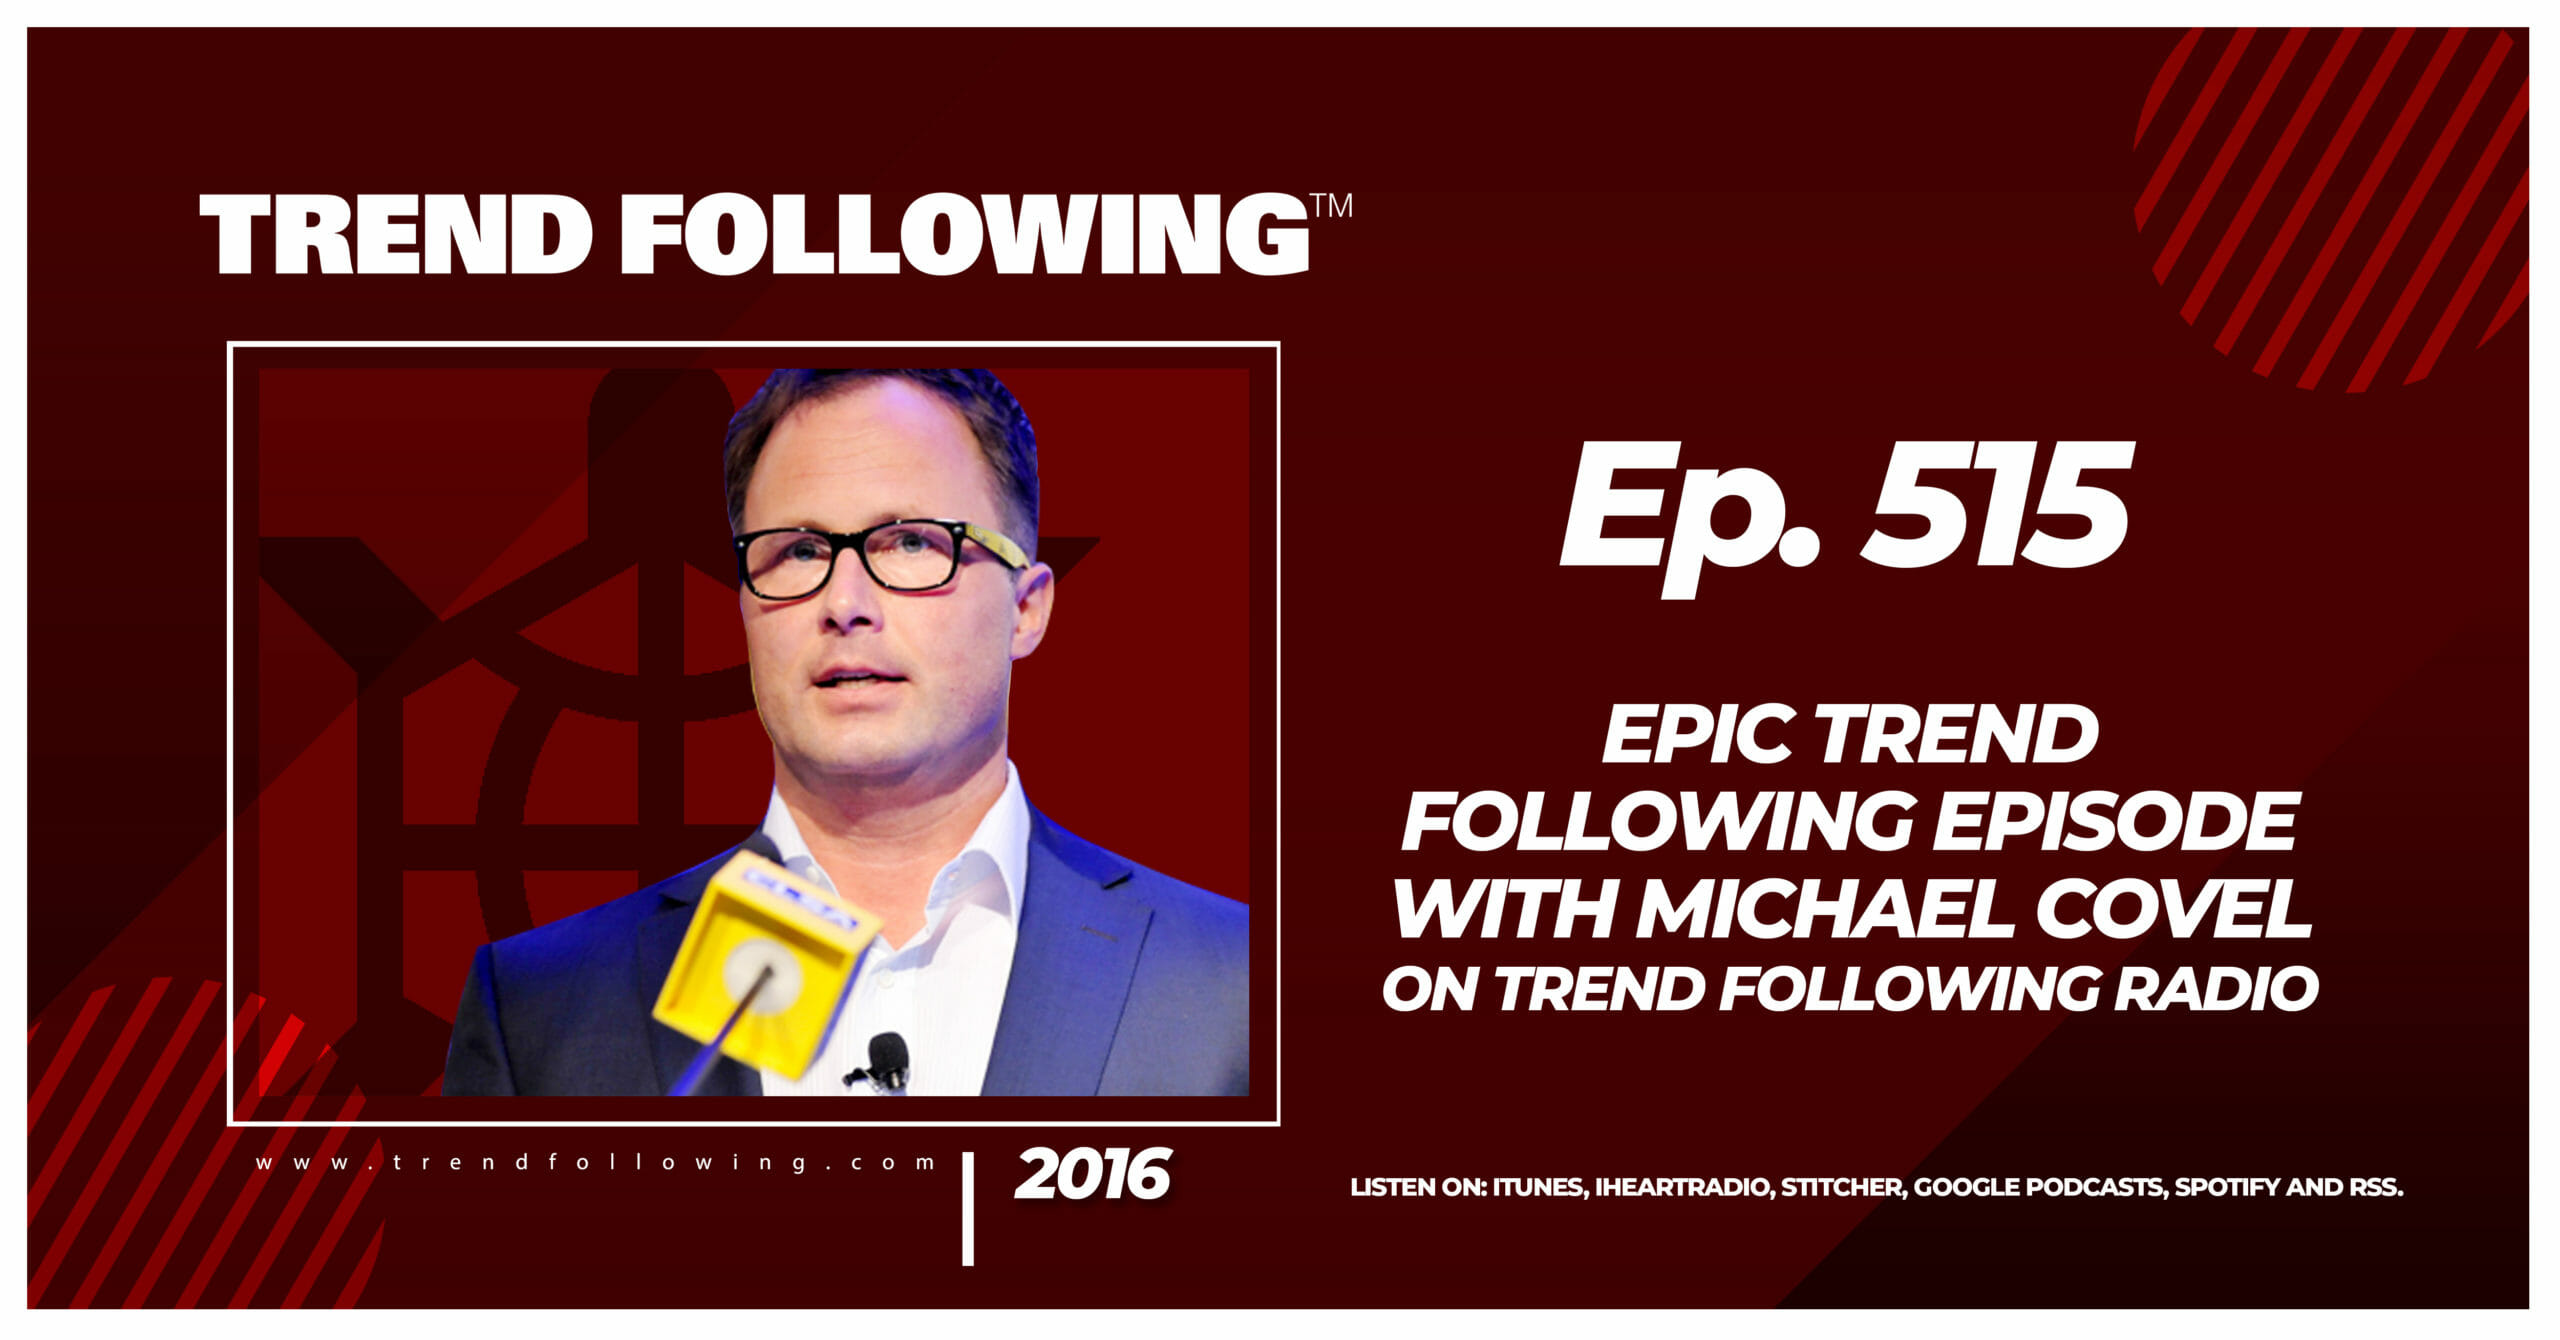 Epic Trend Following Episode with Michael Covel on Trend Following Radio